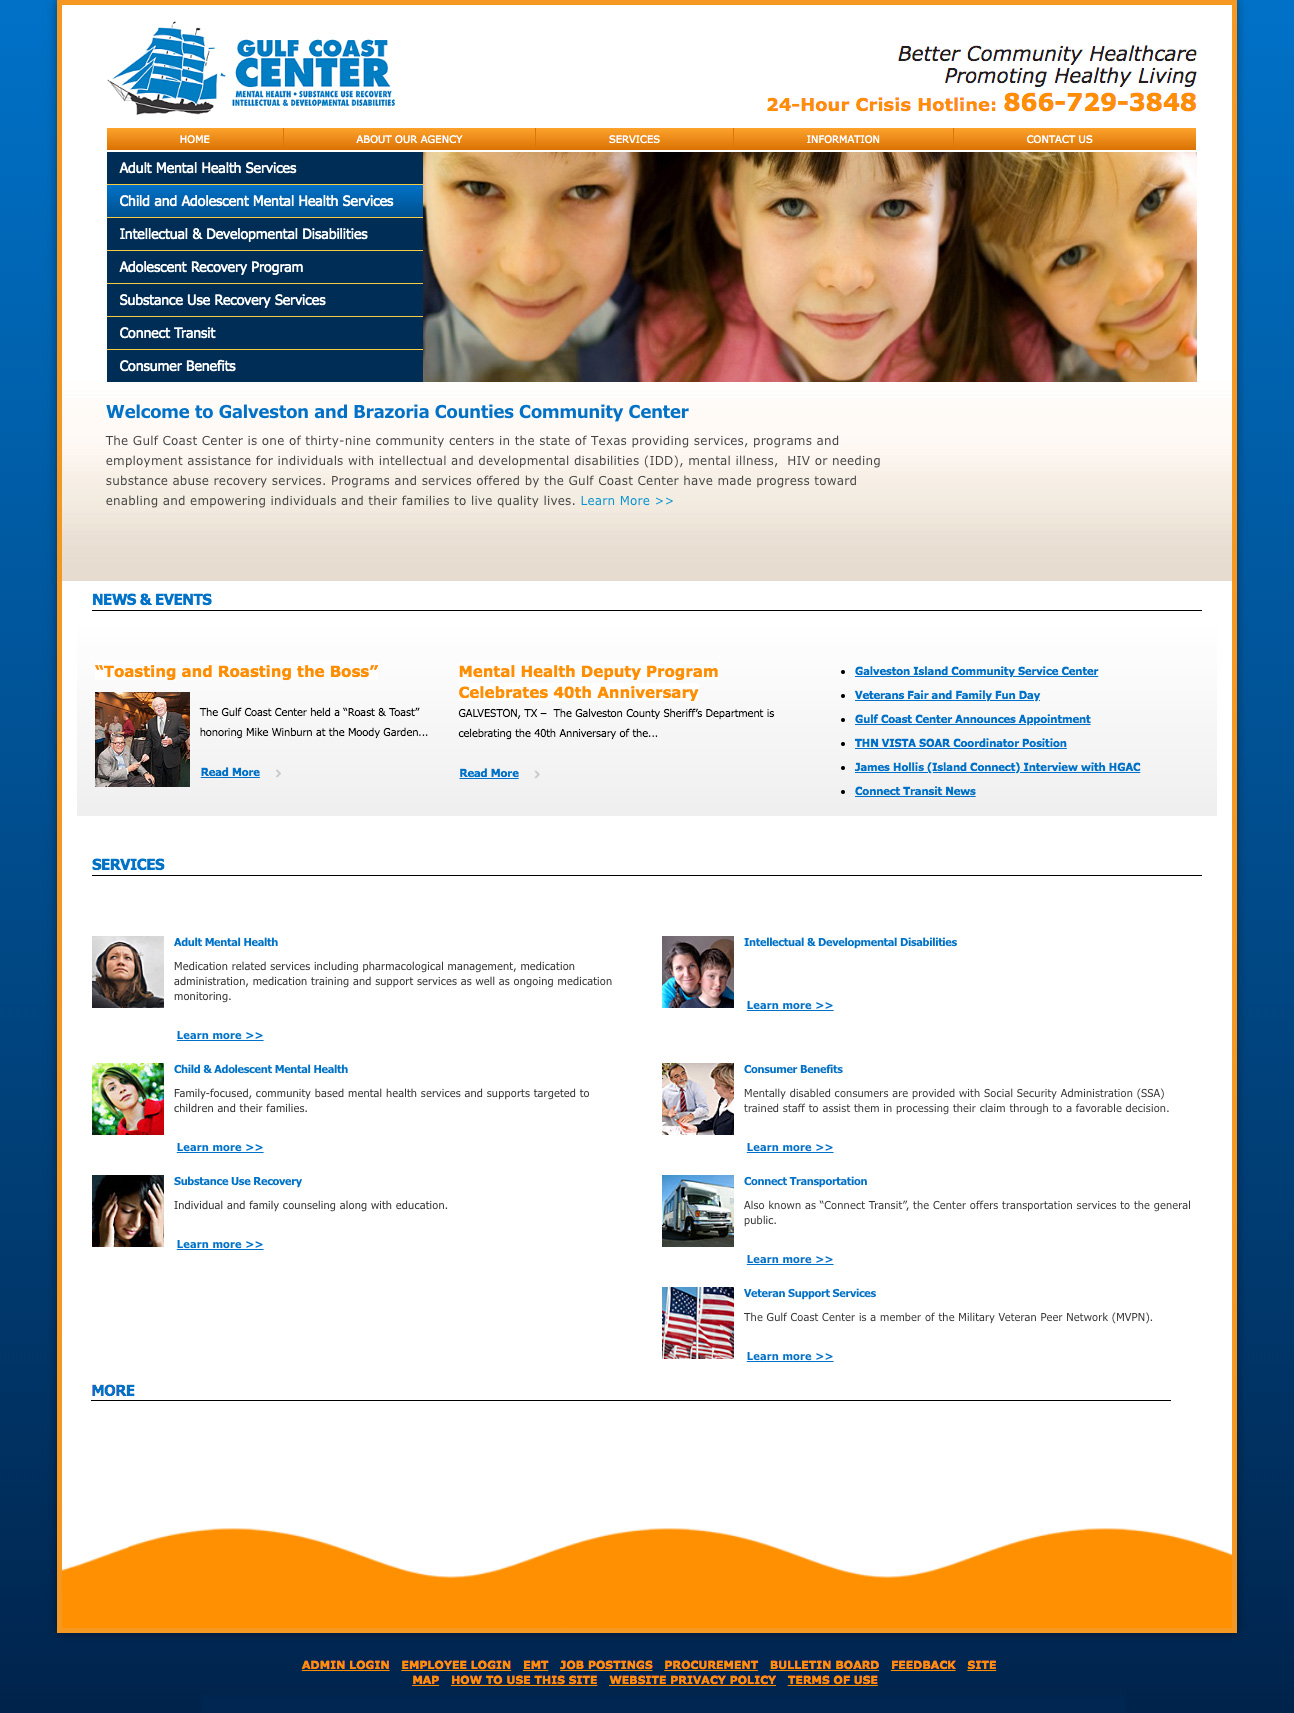 Screenshot of the Gulf Coast Center website home page.